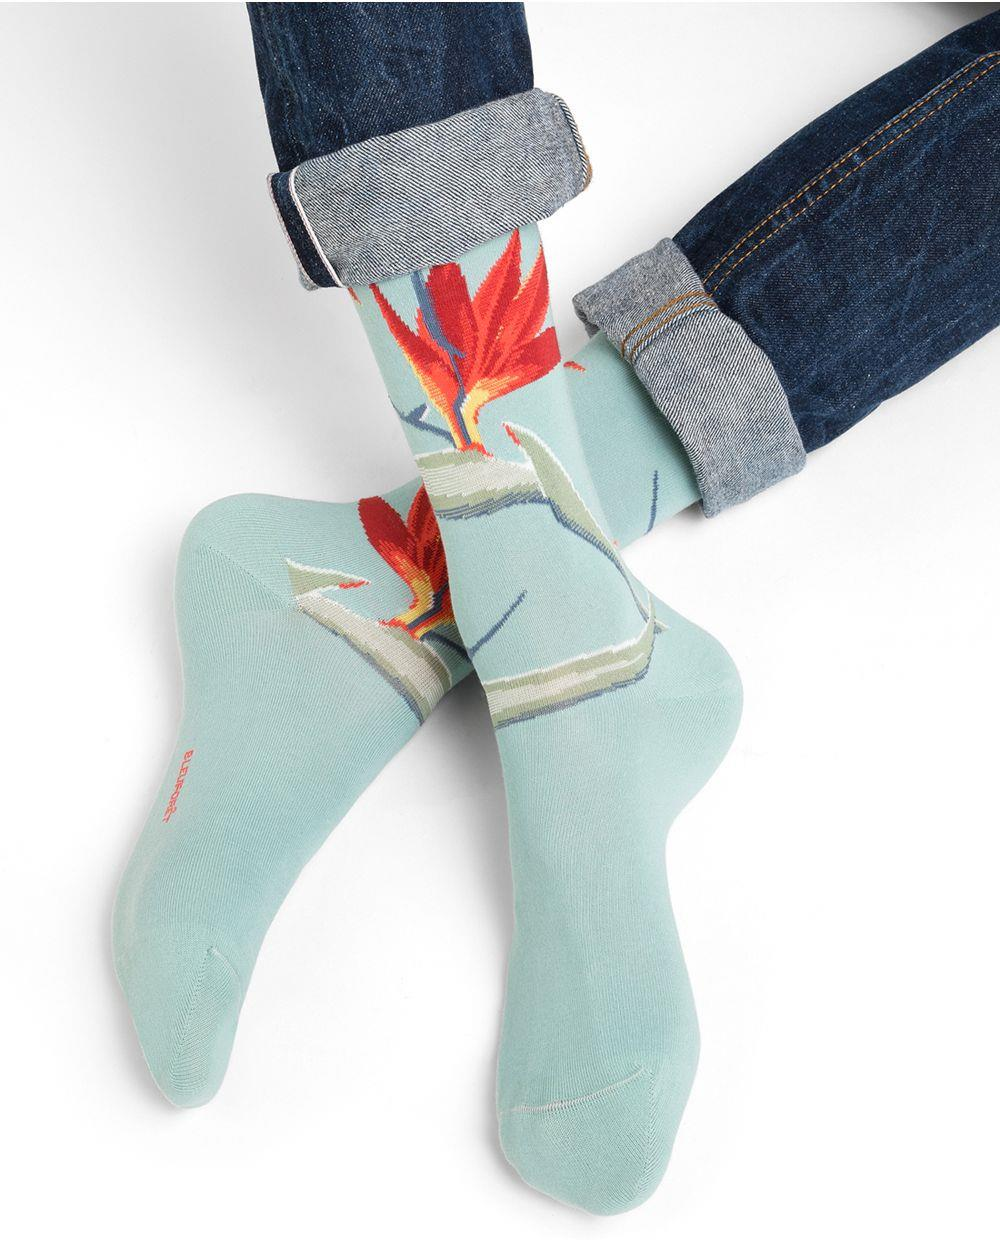 Cotton Socks With Tropical Flowers Motif